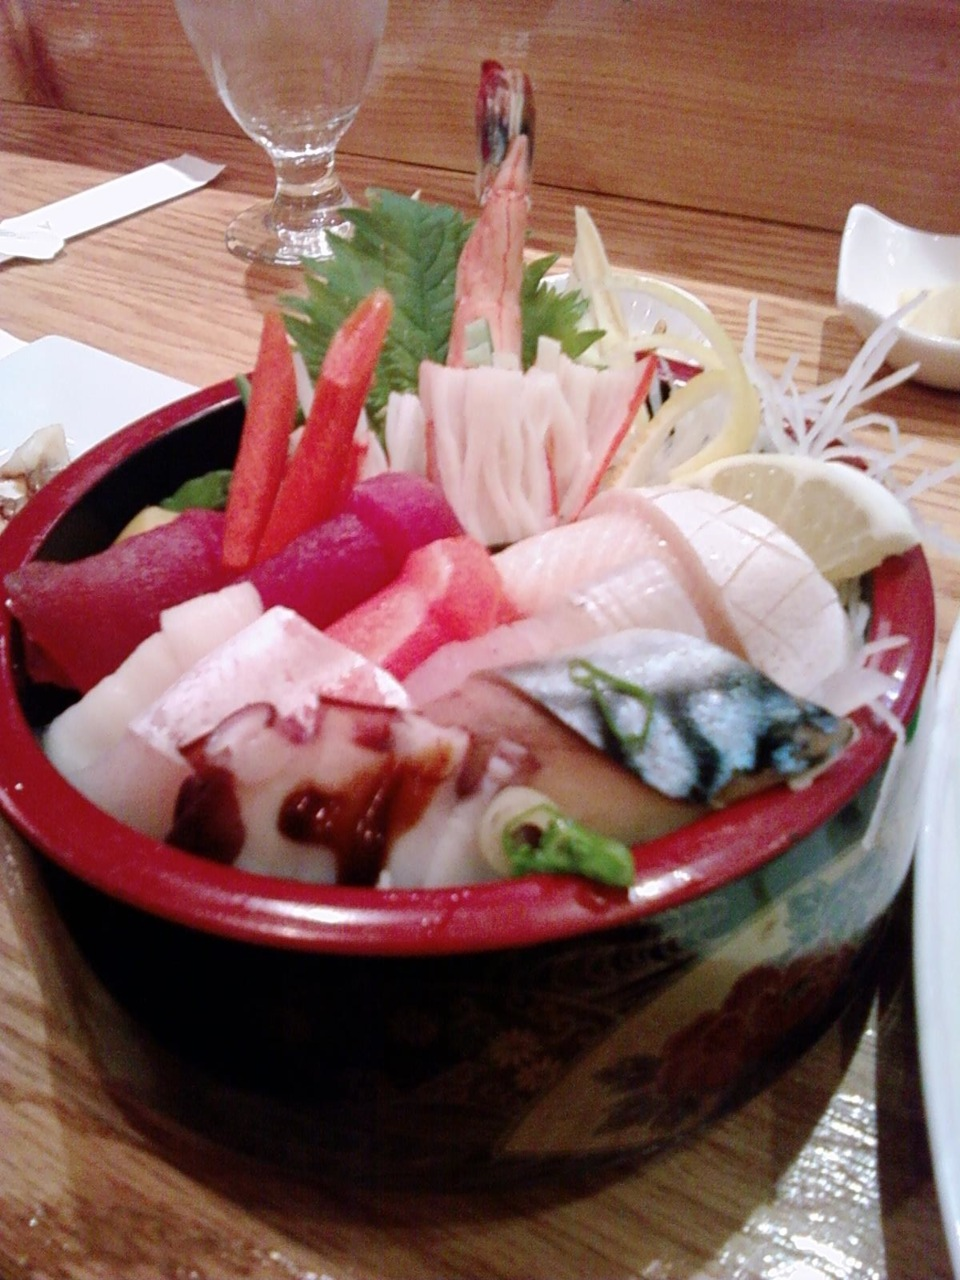 Chirashi @ Ginga in Coolidge Corner; my phone died - thanks Mili for the picture!